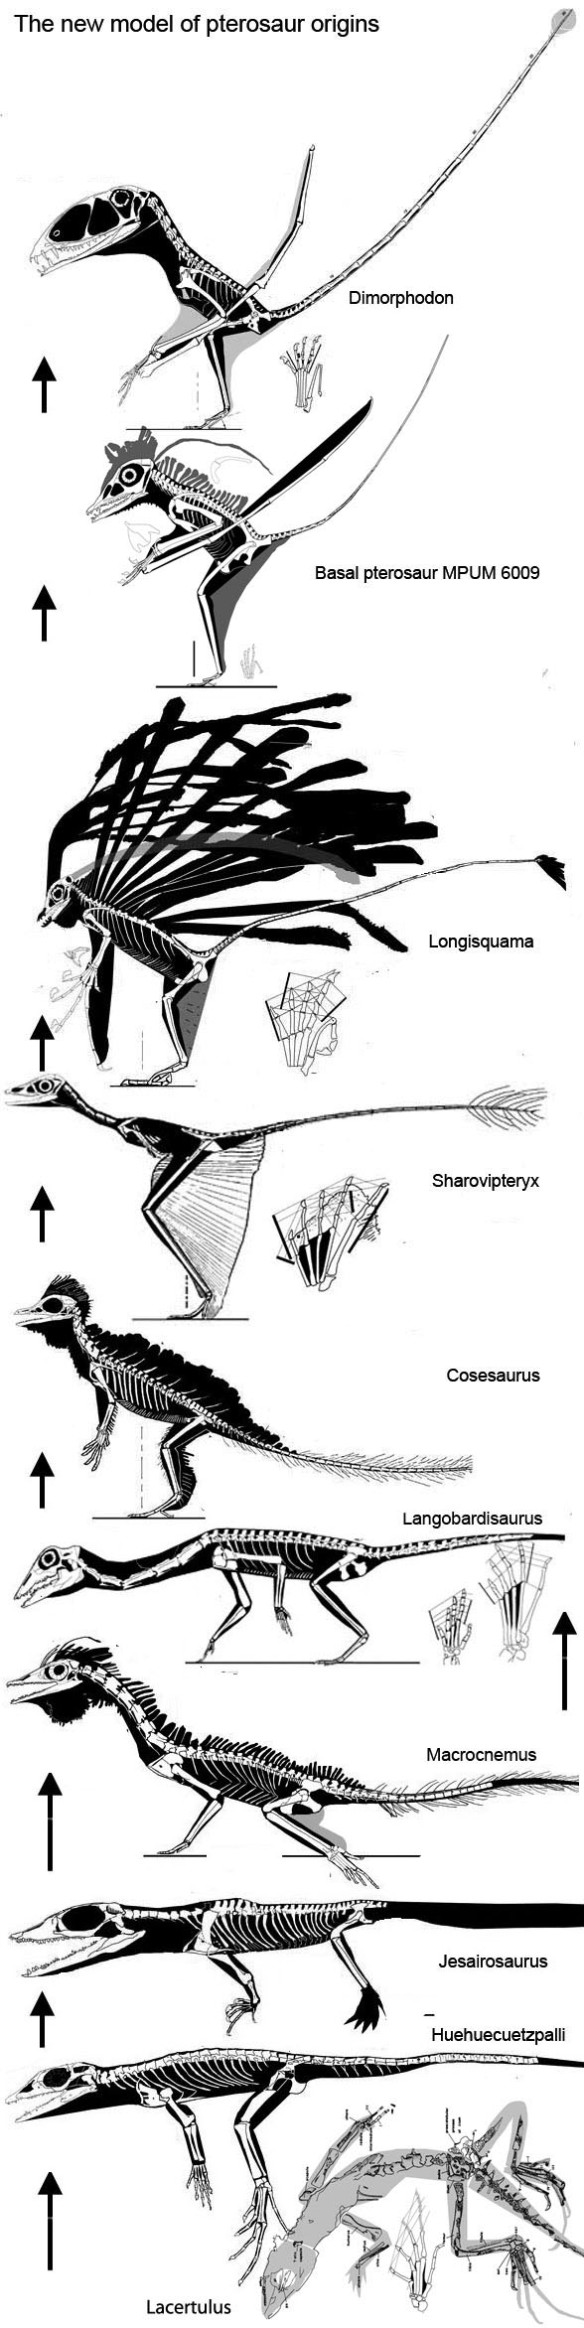 Click to enlarge. Squamates, tritosaurs and fenestrasaurs in the phylogenetic lineage preceding the origin of the Pterosauria.